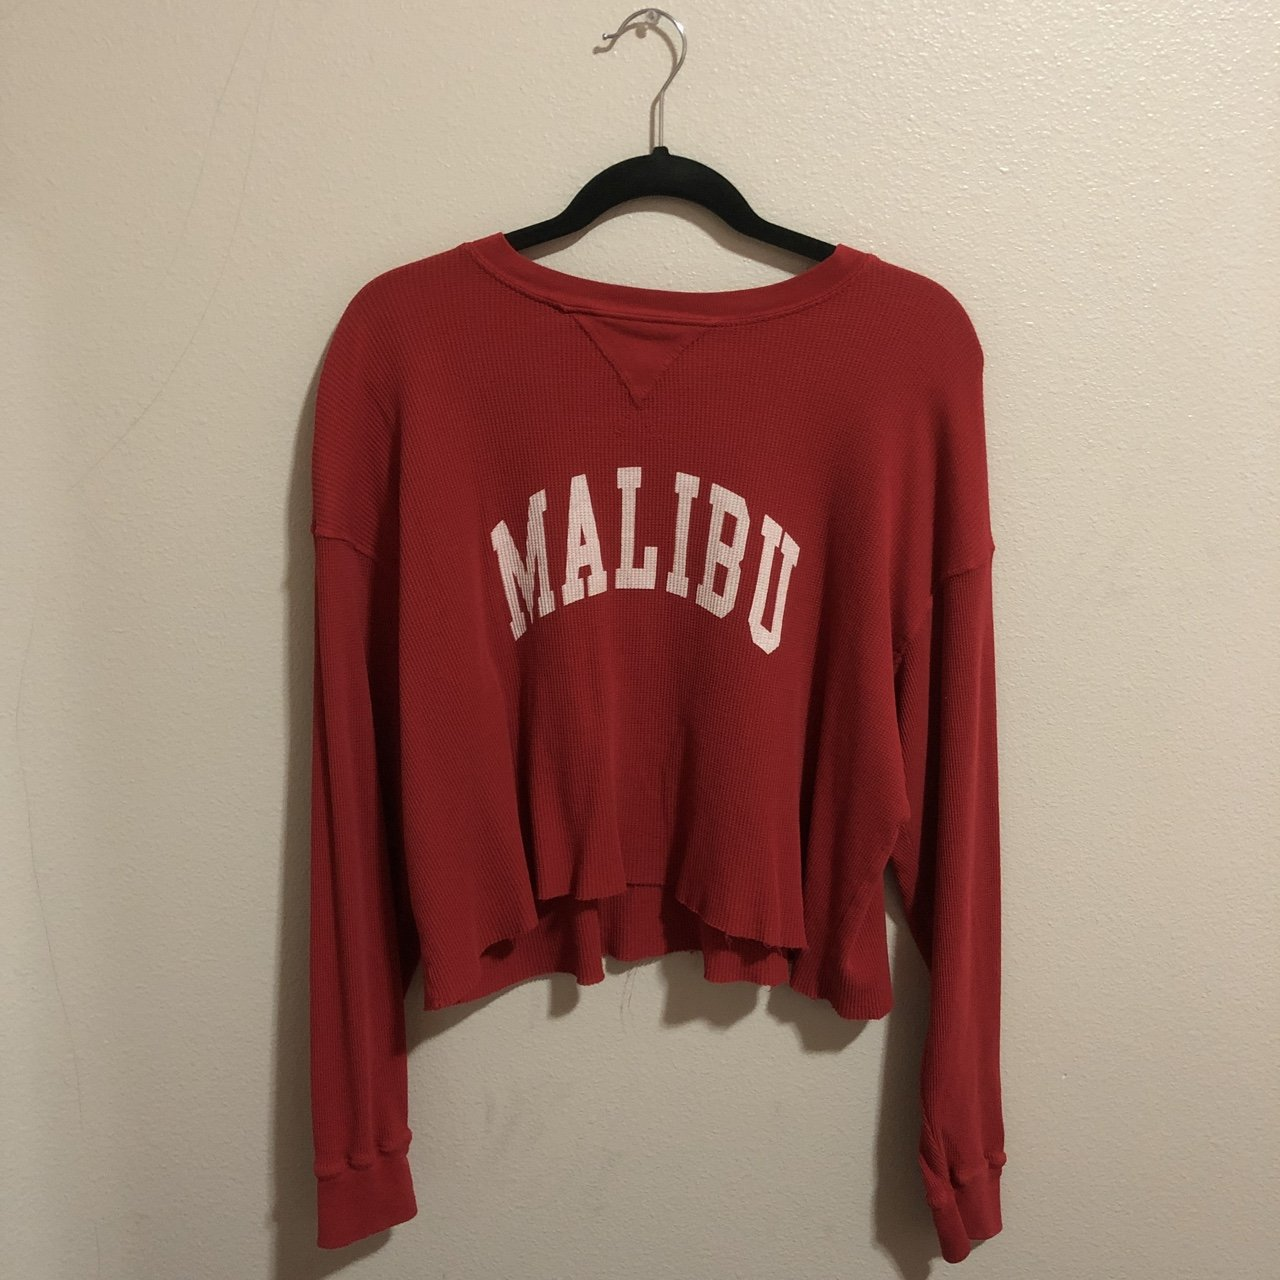 8a5cad271d  jtviray. 7 months ago. United States. Brandy Melville Red Malibu Laila  Thermal Not available on ...